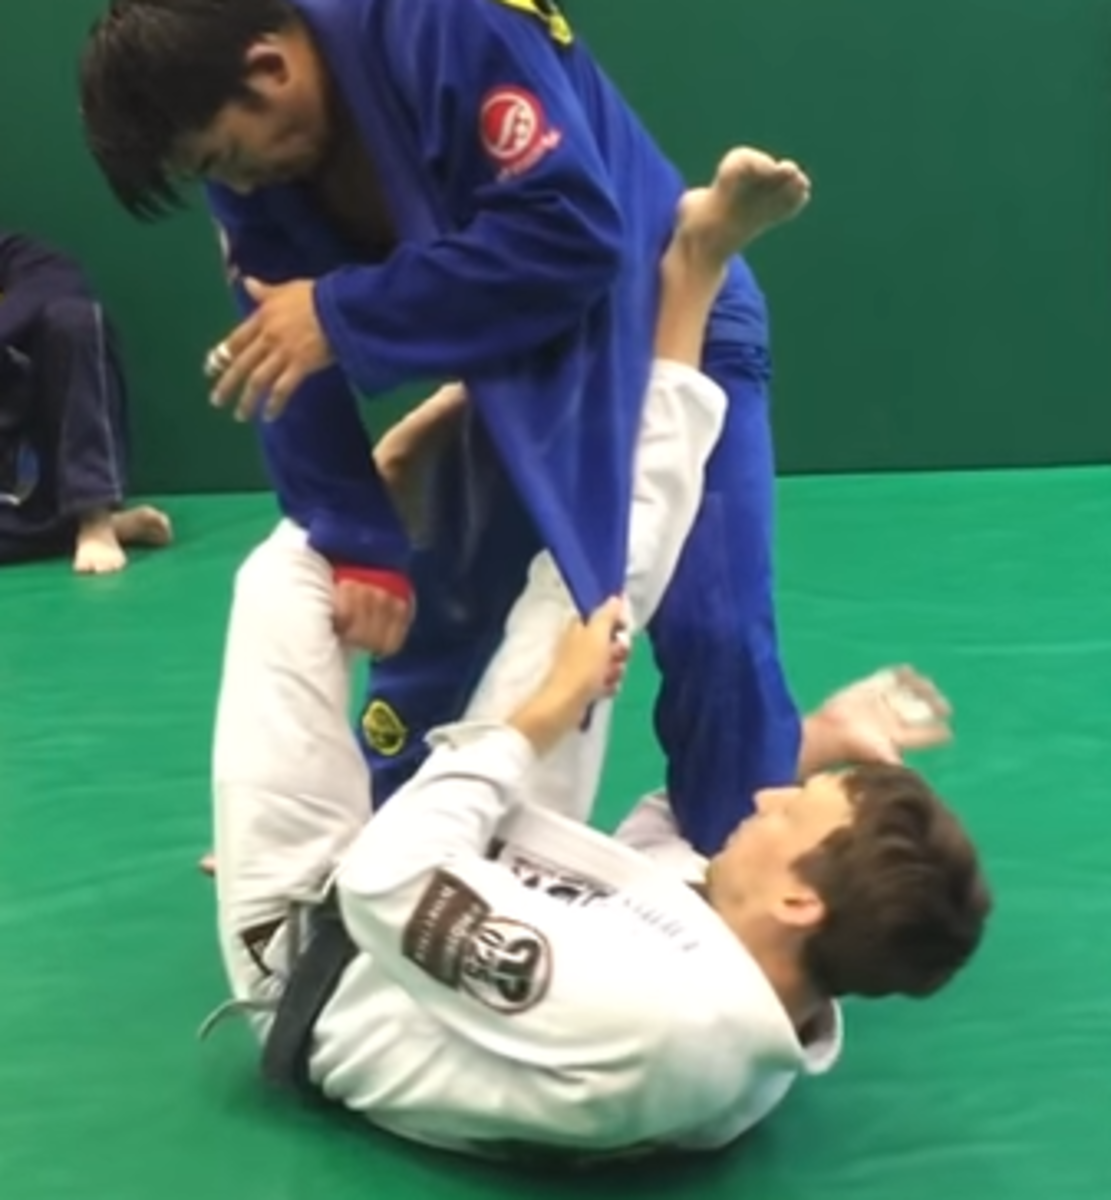 Utilizing the lapel guard.